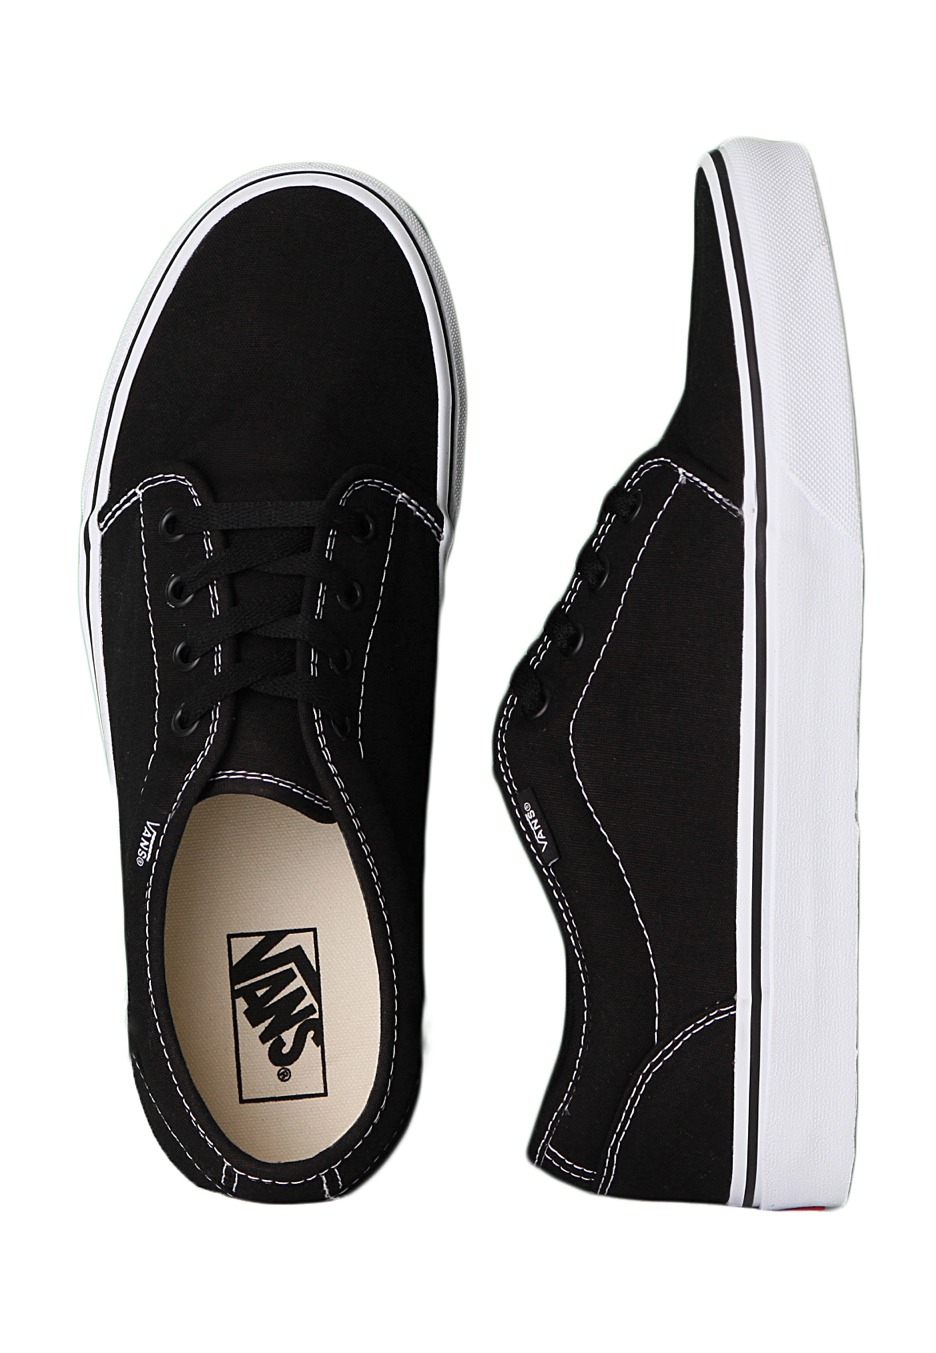 Vans - 106 Vulcanized Black White - Shoes - Impericon.com Worldwide 6f7425581